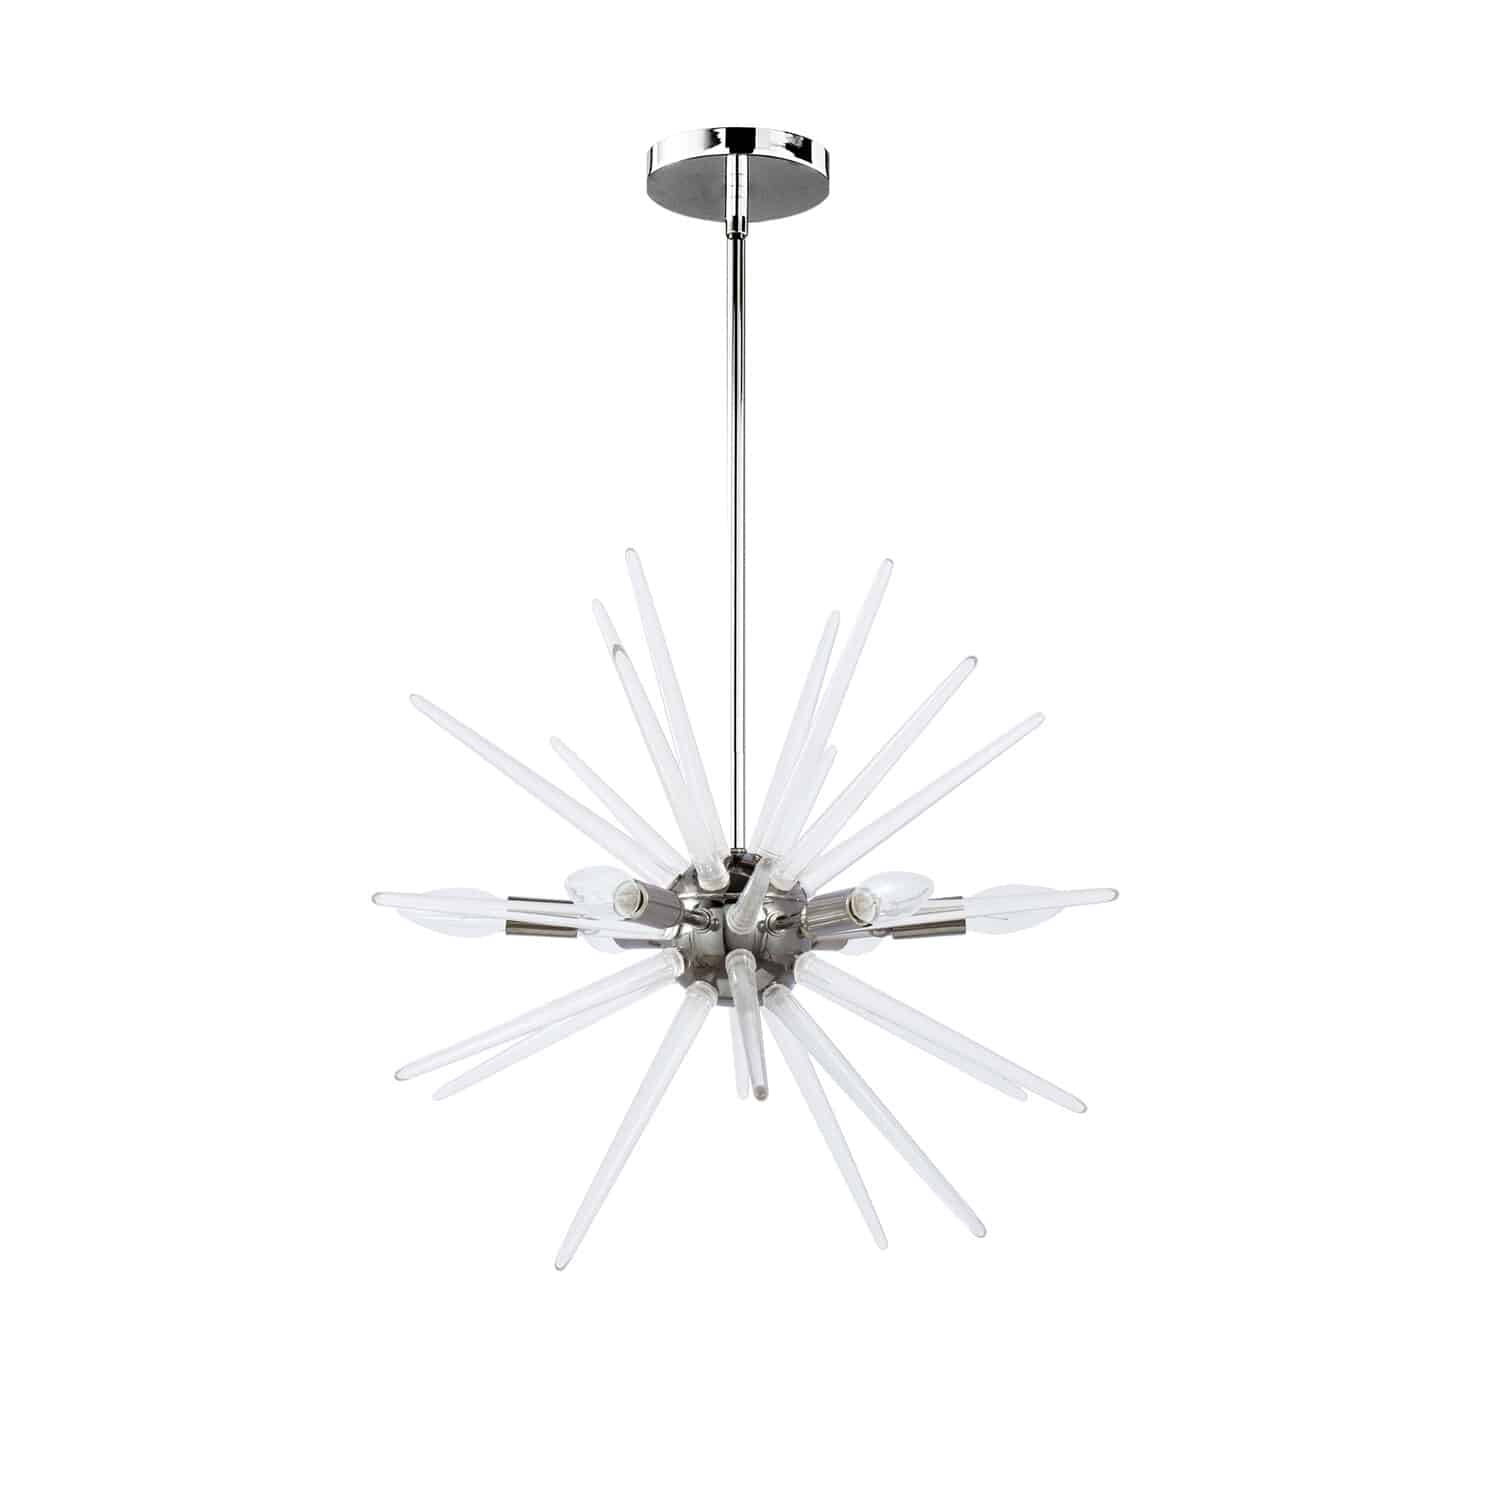 6 Light Incandescent Pendant, Polished Chrome Finish with Clear Acrylic Spikes